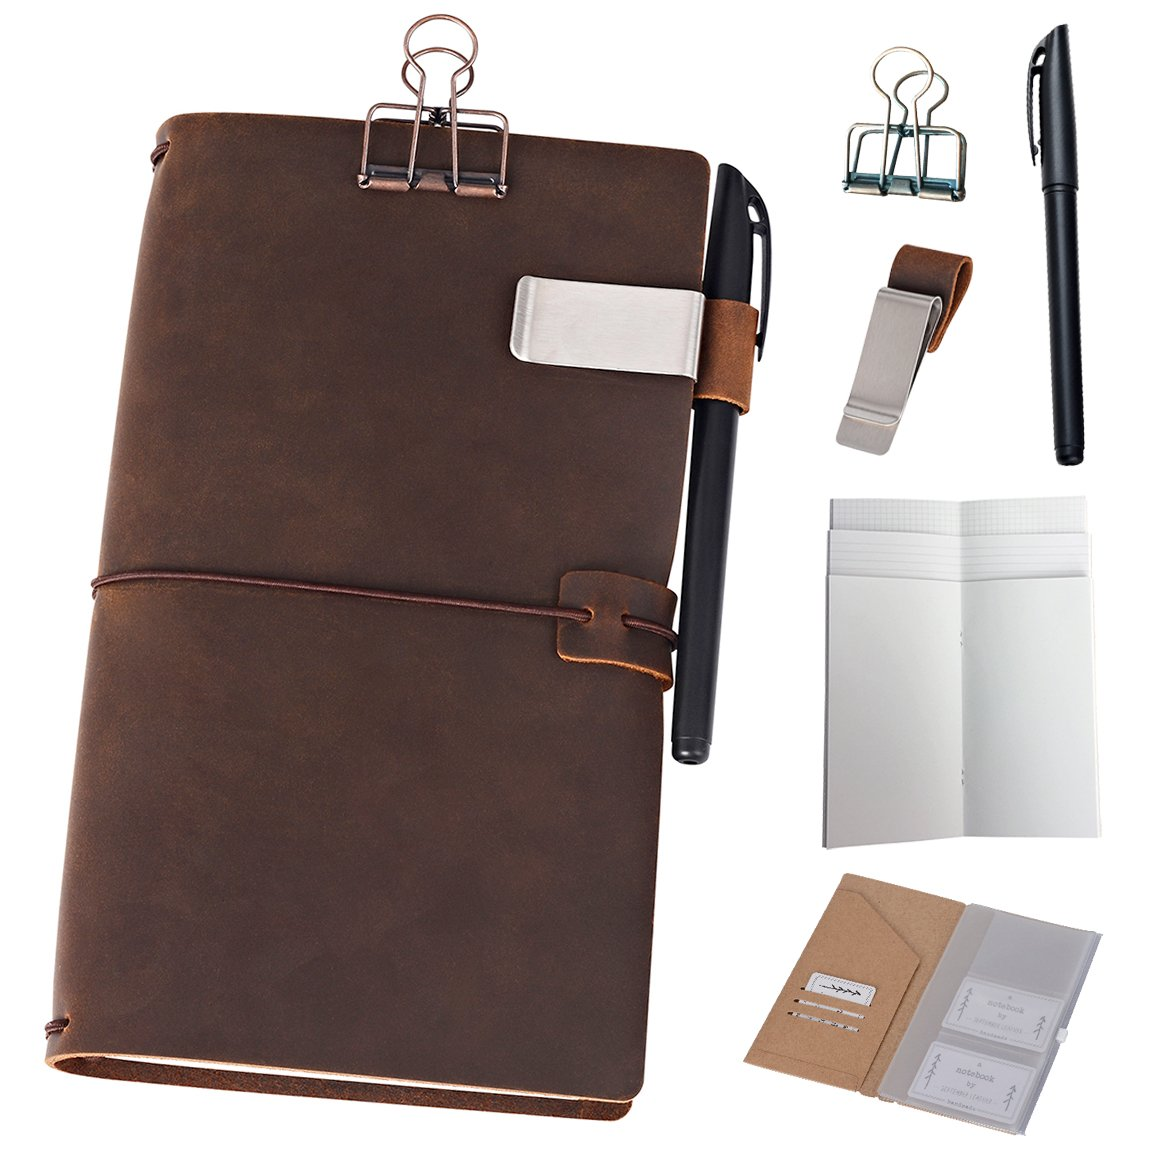 Refillable Leather Journal Travelers Notebook - 8.5 x 4.5 Travel Diary with 5 Inserts + Pen Holder and Binder Clip, Standard Size, Brown by newestor